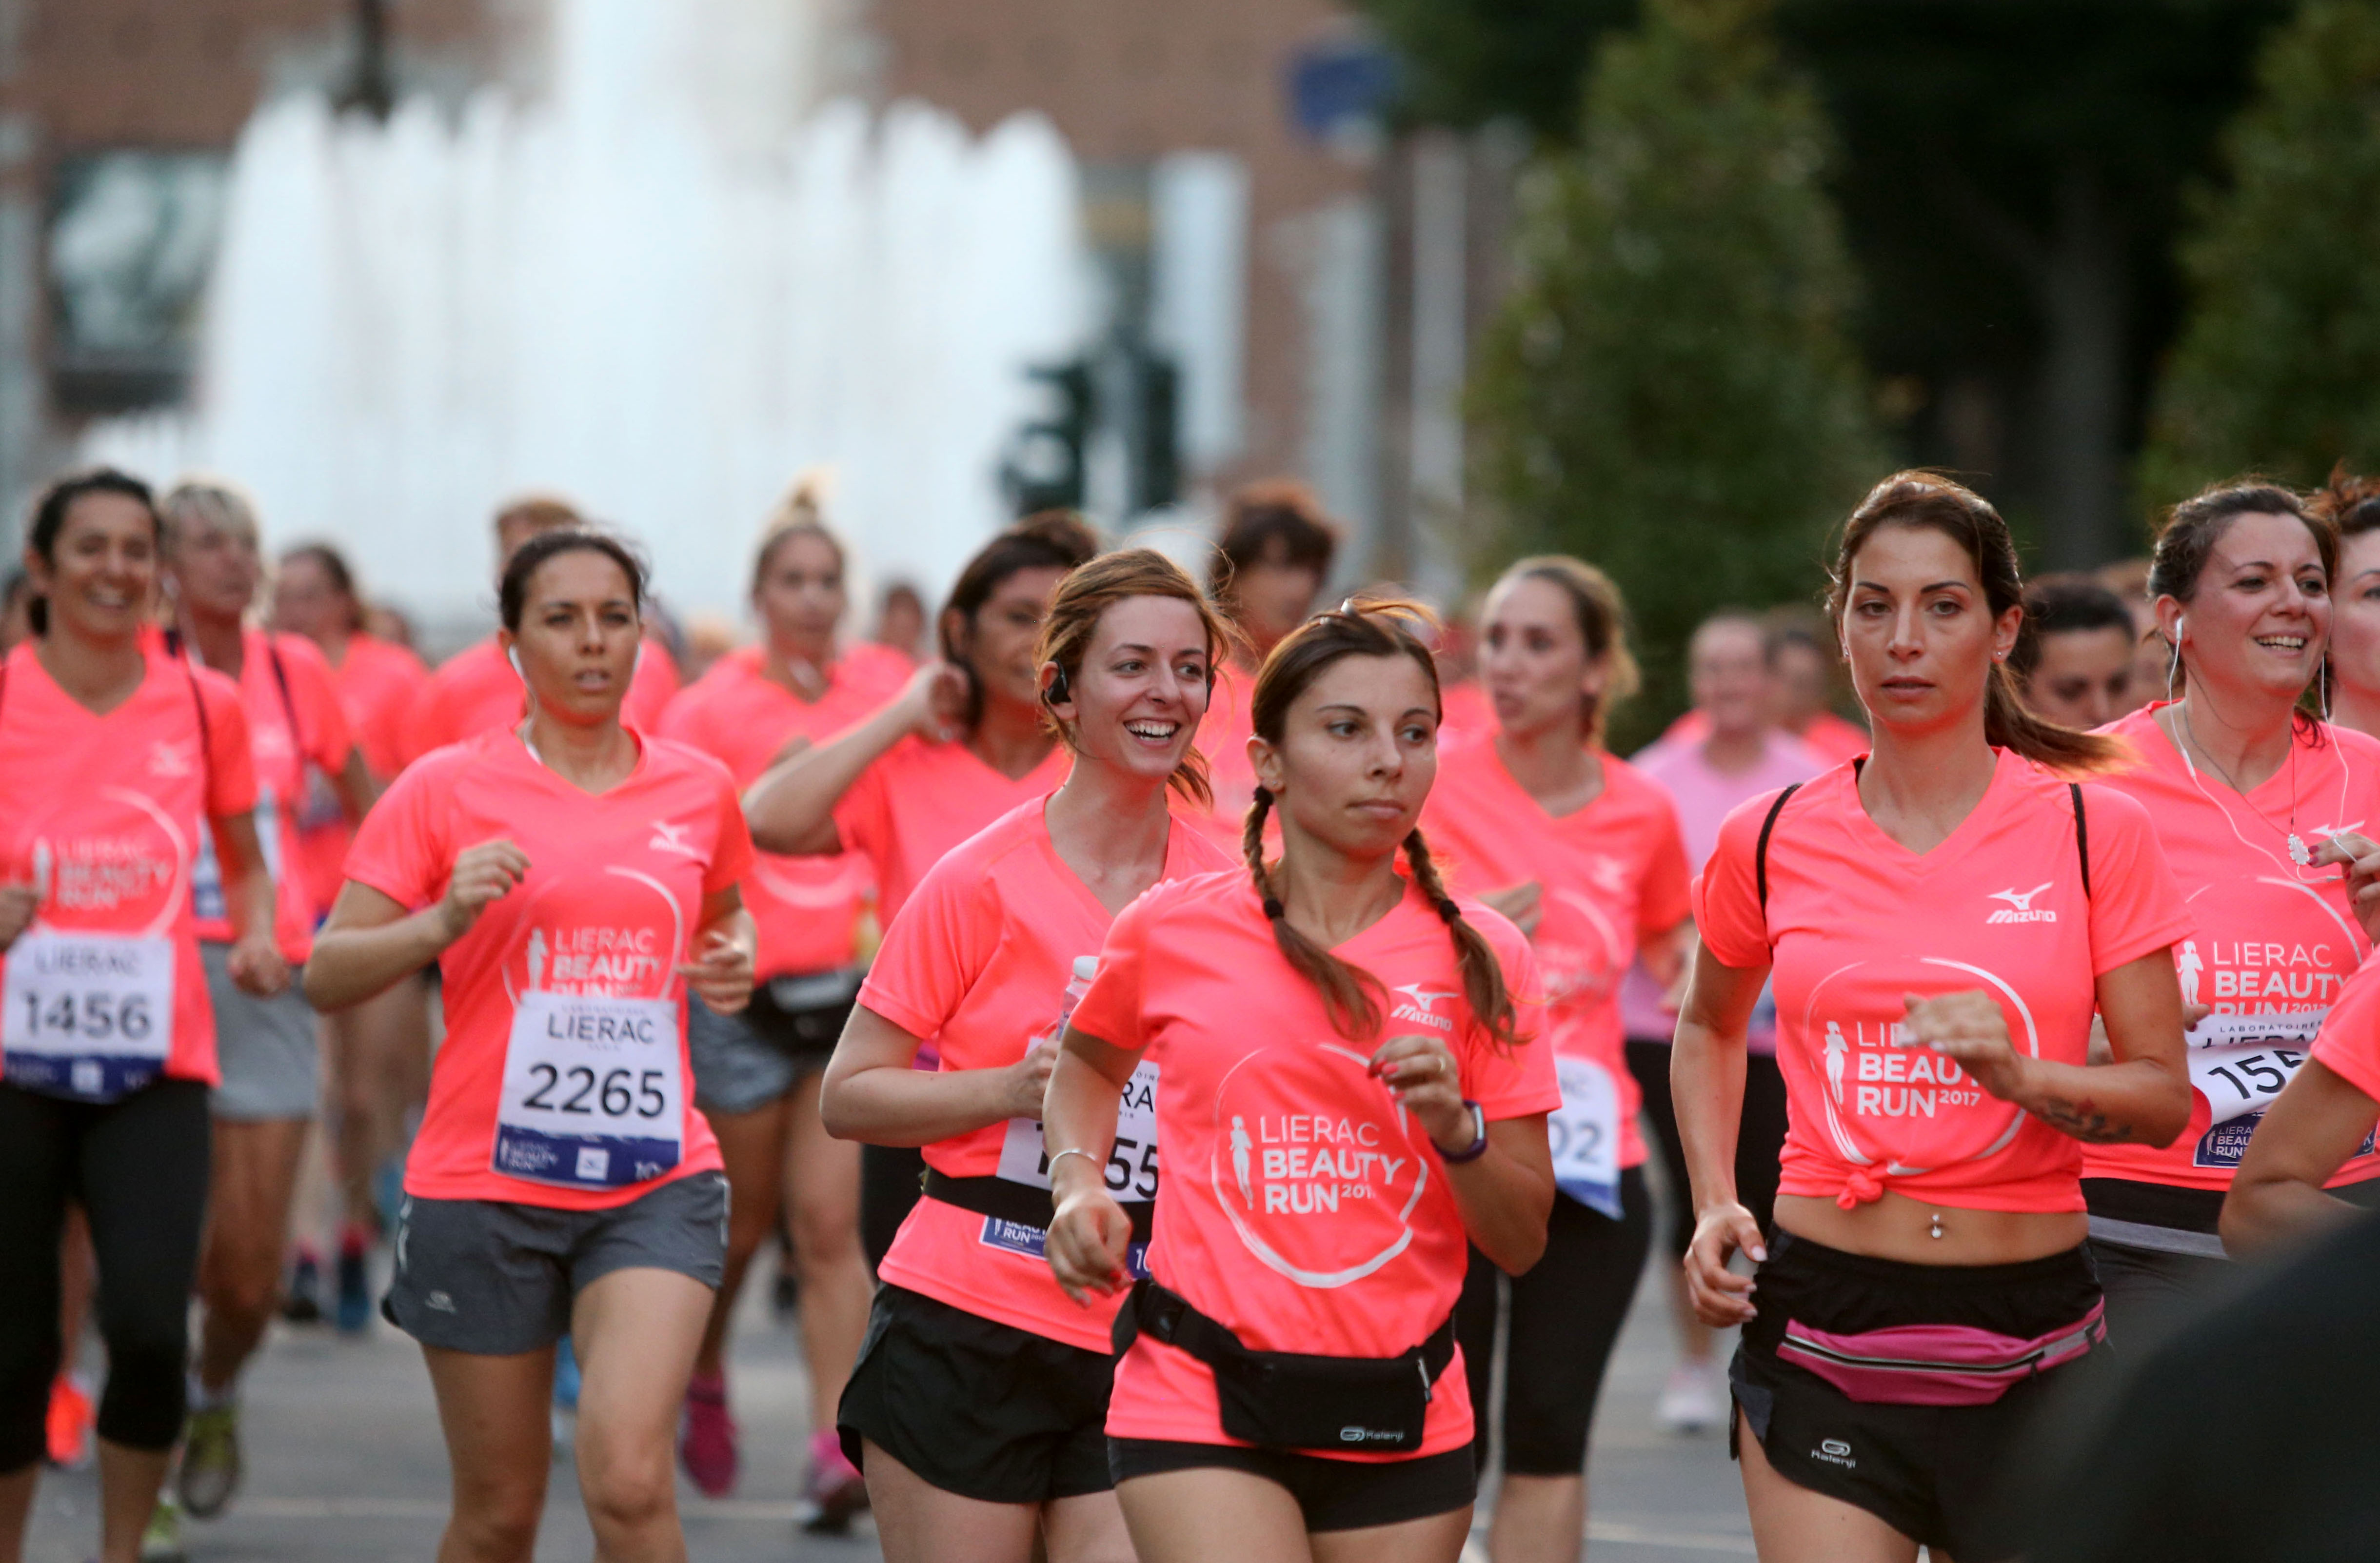 lierac-beauty-run-2017_castello_ph-credits-lapresse